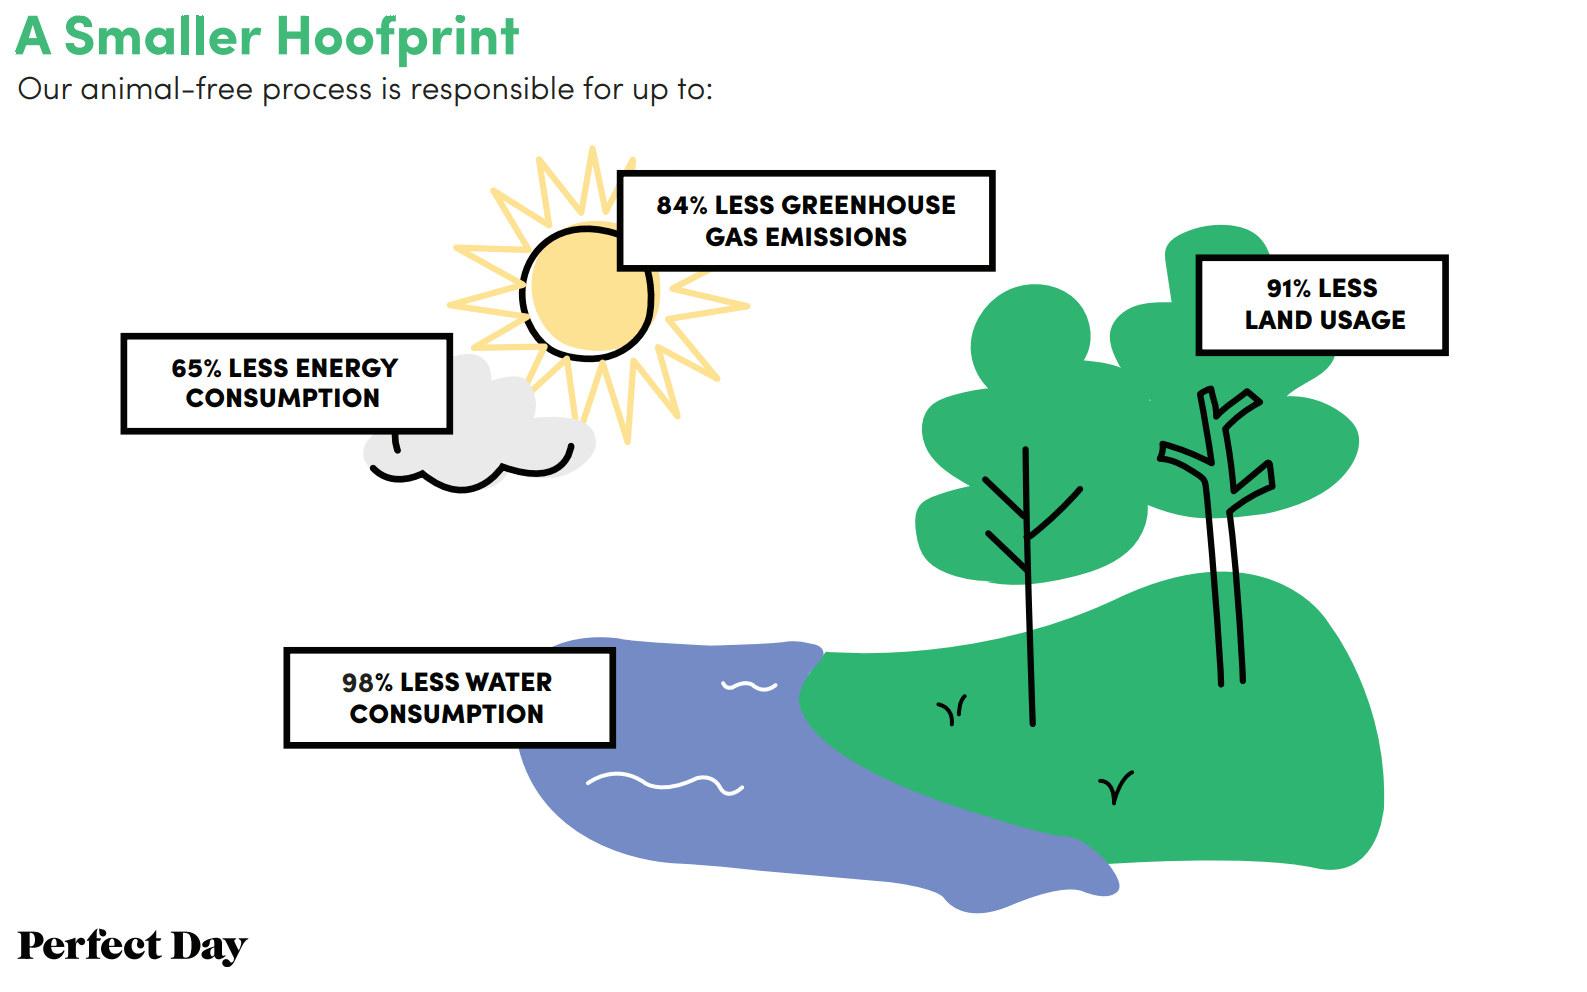 Graphic saying that Perfect Days process uses 65% less energy, emits 85% less green house gas emissions, uses 91% less land, and 98% less water thanhow milk is currently produced.